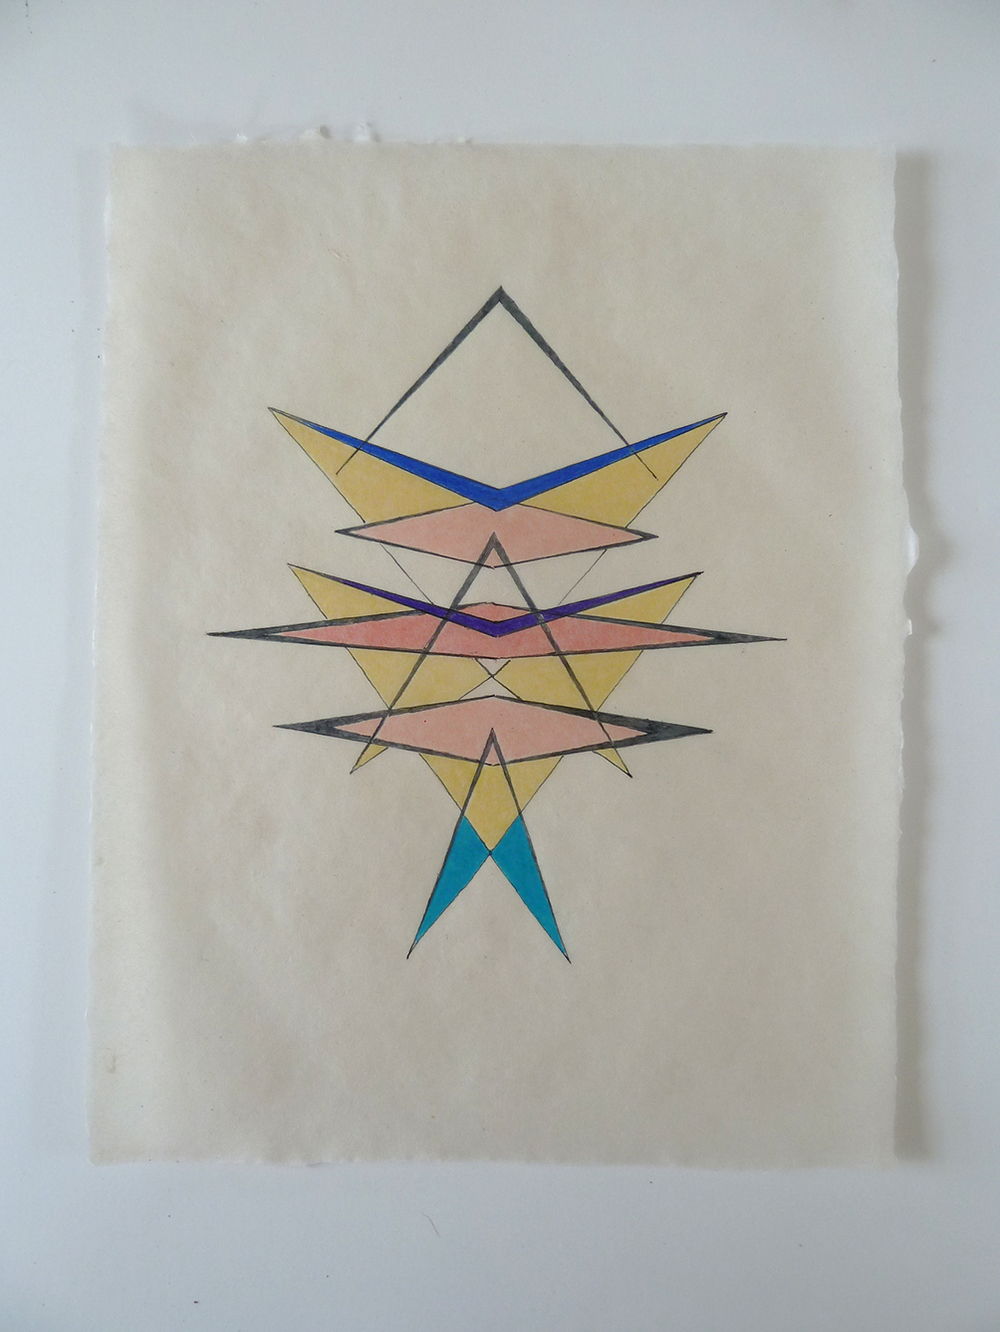 Tayo Heuser Small Geometric Drawings on abaca paper Ink and pencil on handmade abaca paper